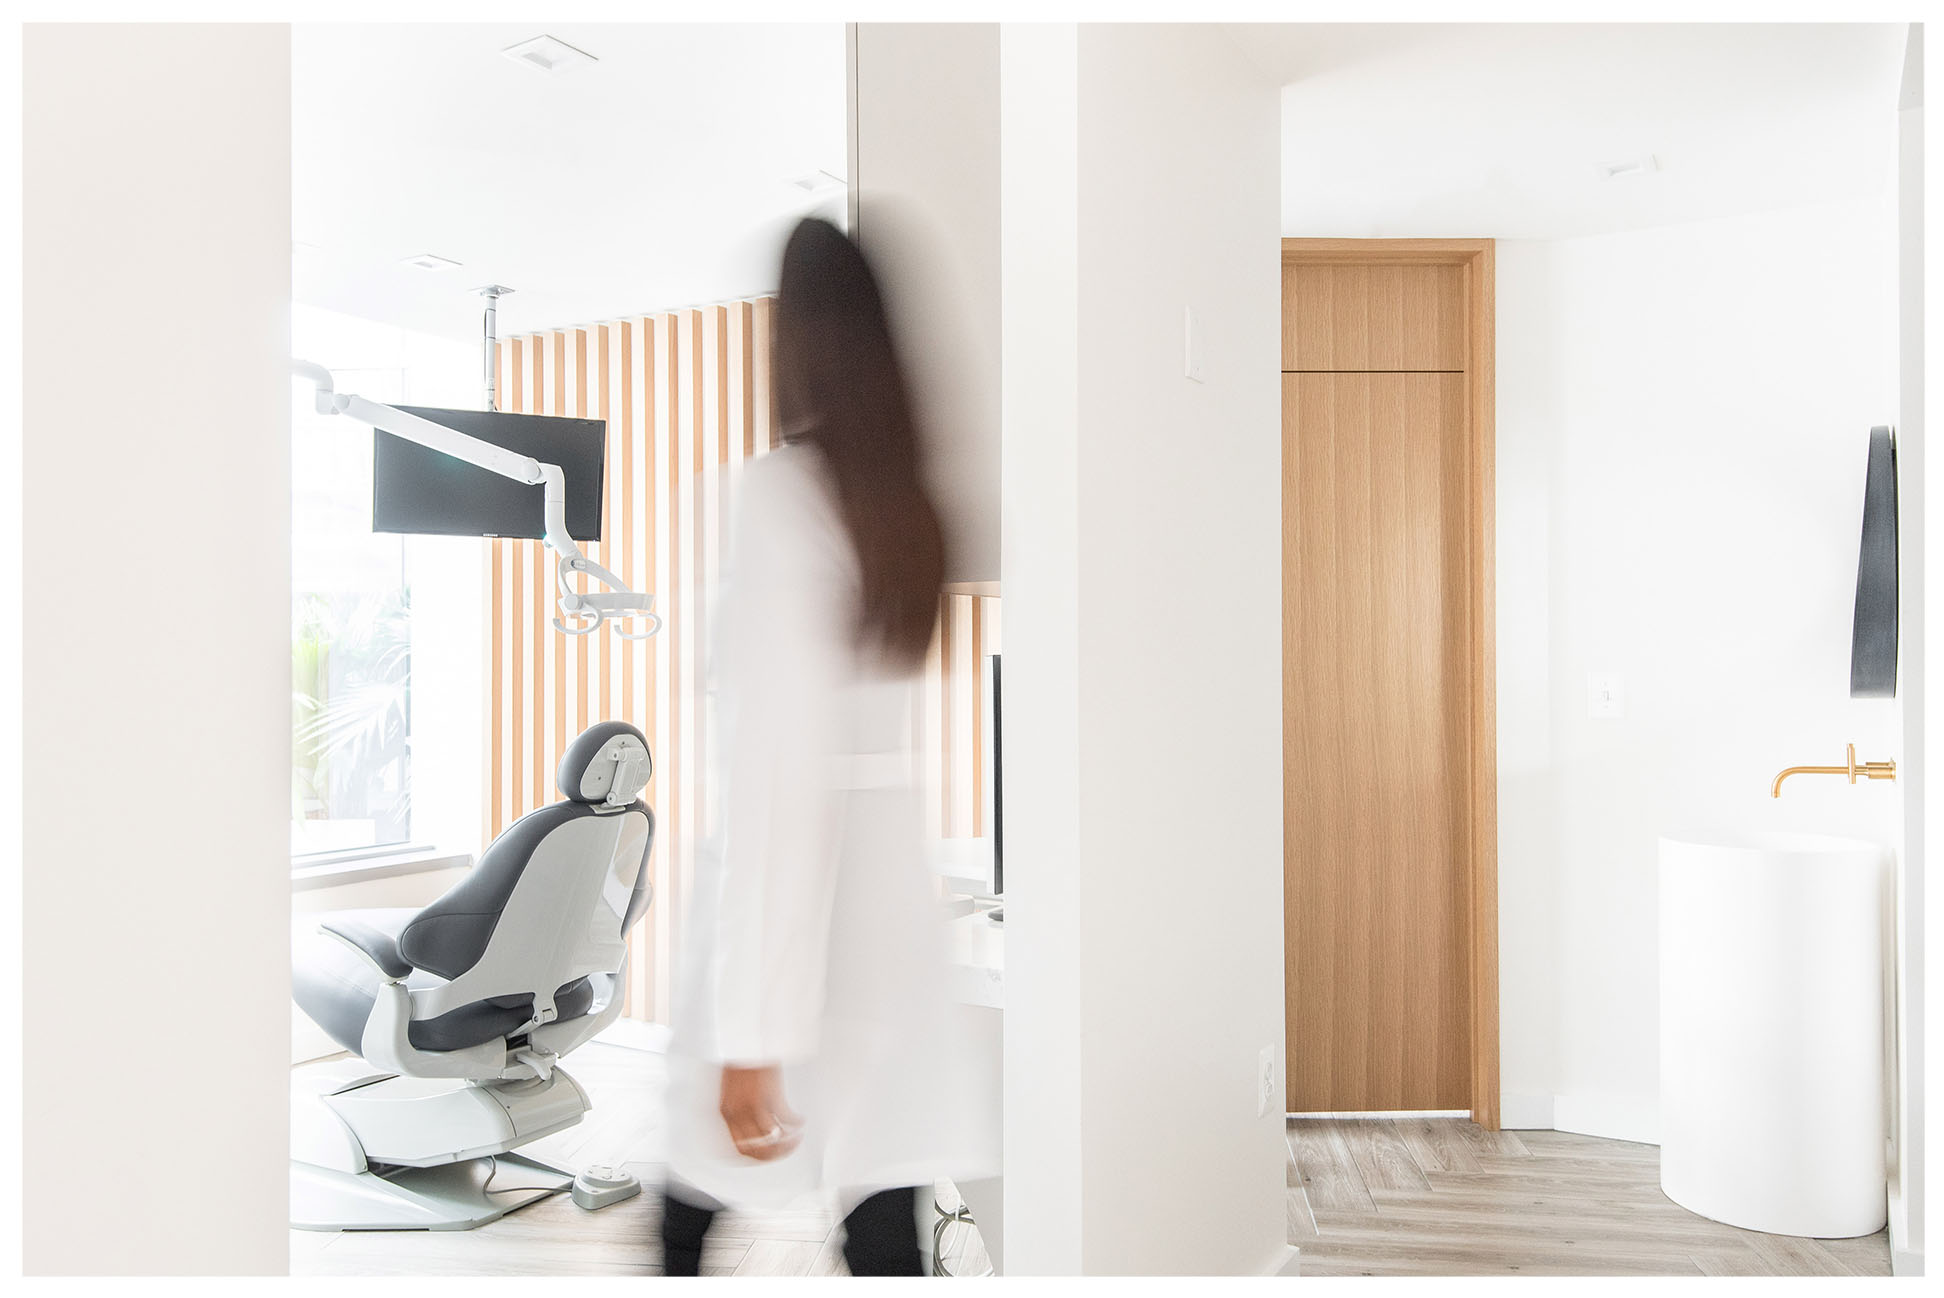 LUXURY SERVICES - PREMIUM DENTAL AND COSMETIC TREATMENTS